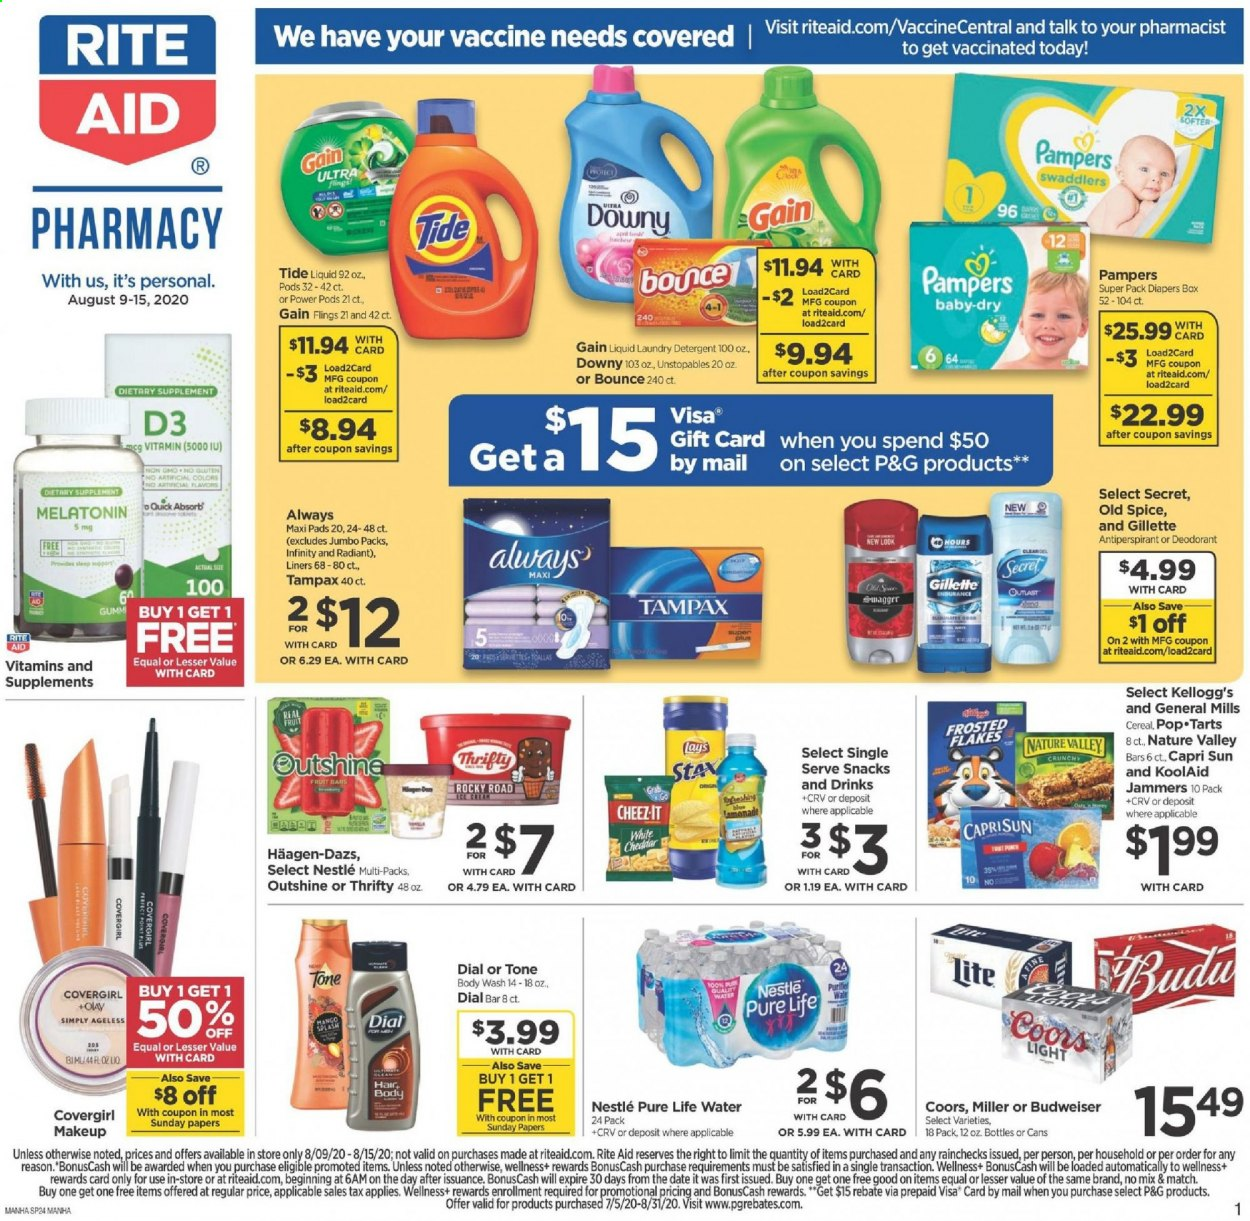 RITE AID Flyer - 08.09.2020 - 08.15.2020 - Sales products - always, body wash, bounce, box, budweiser, capri sun, cereals, d3, deodorant, detergent, downy, gain, gillette, makeup, melatonin, nestlé, secret, tampax, tide, unstopables, cheddar, pampers, olay, old spice, pads, snack, gift card, cereal, flakes, fruit, miller, coors, liquid, laundry detergent, diapers. Page 1.